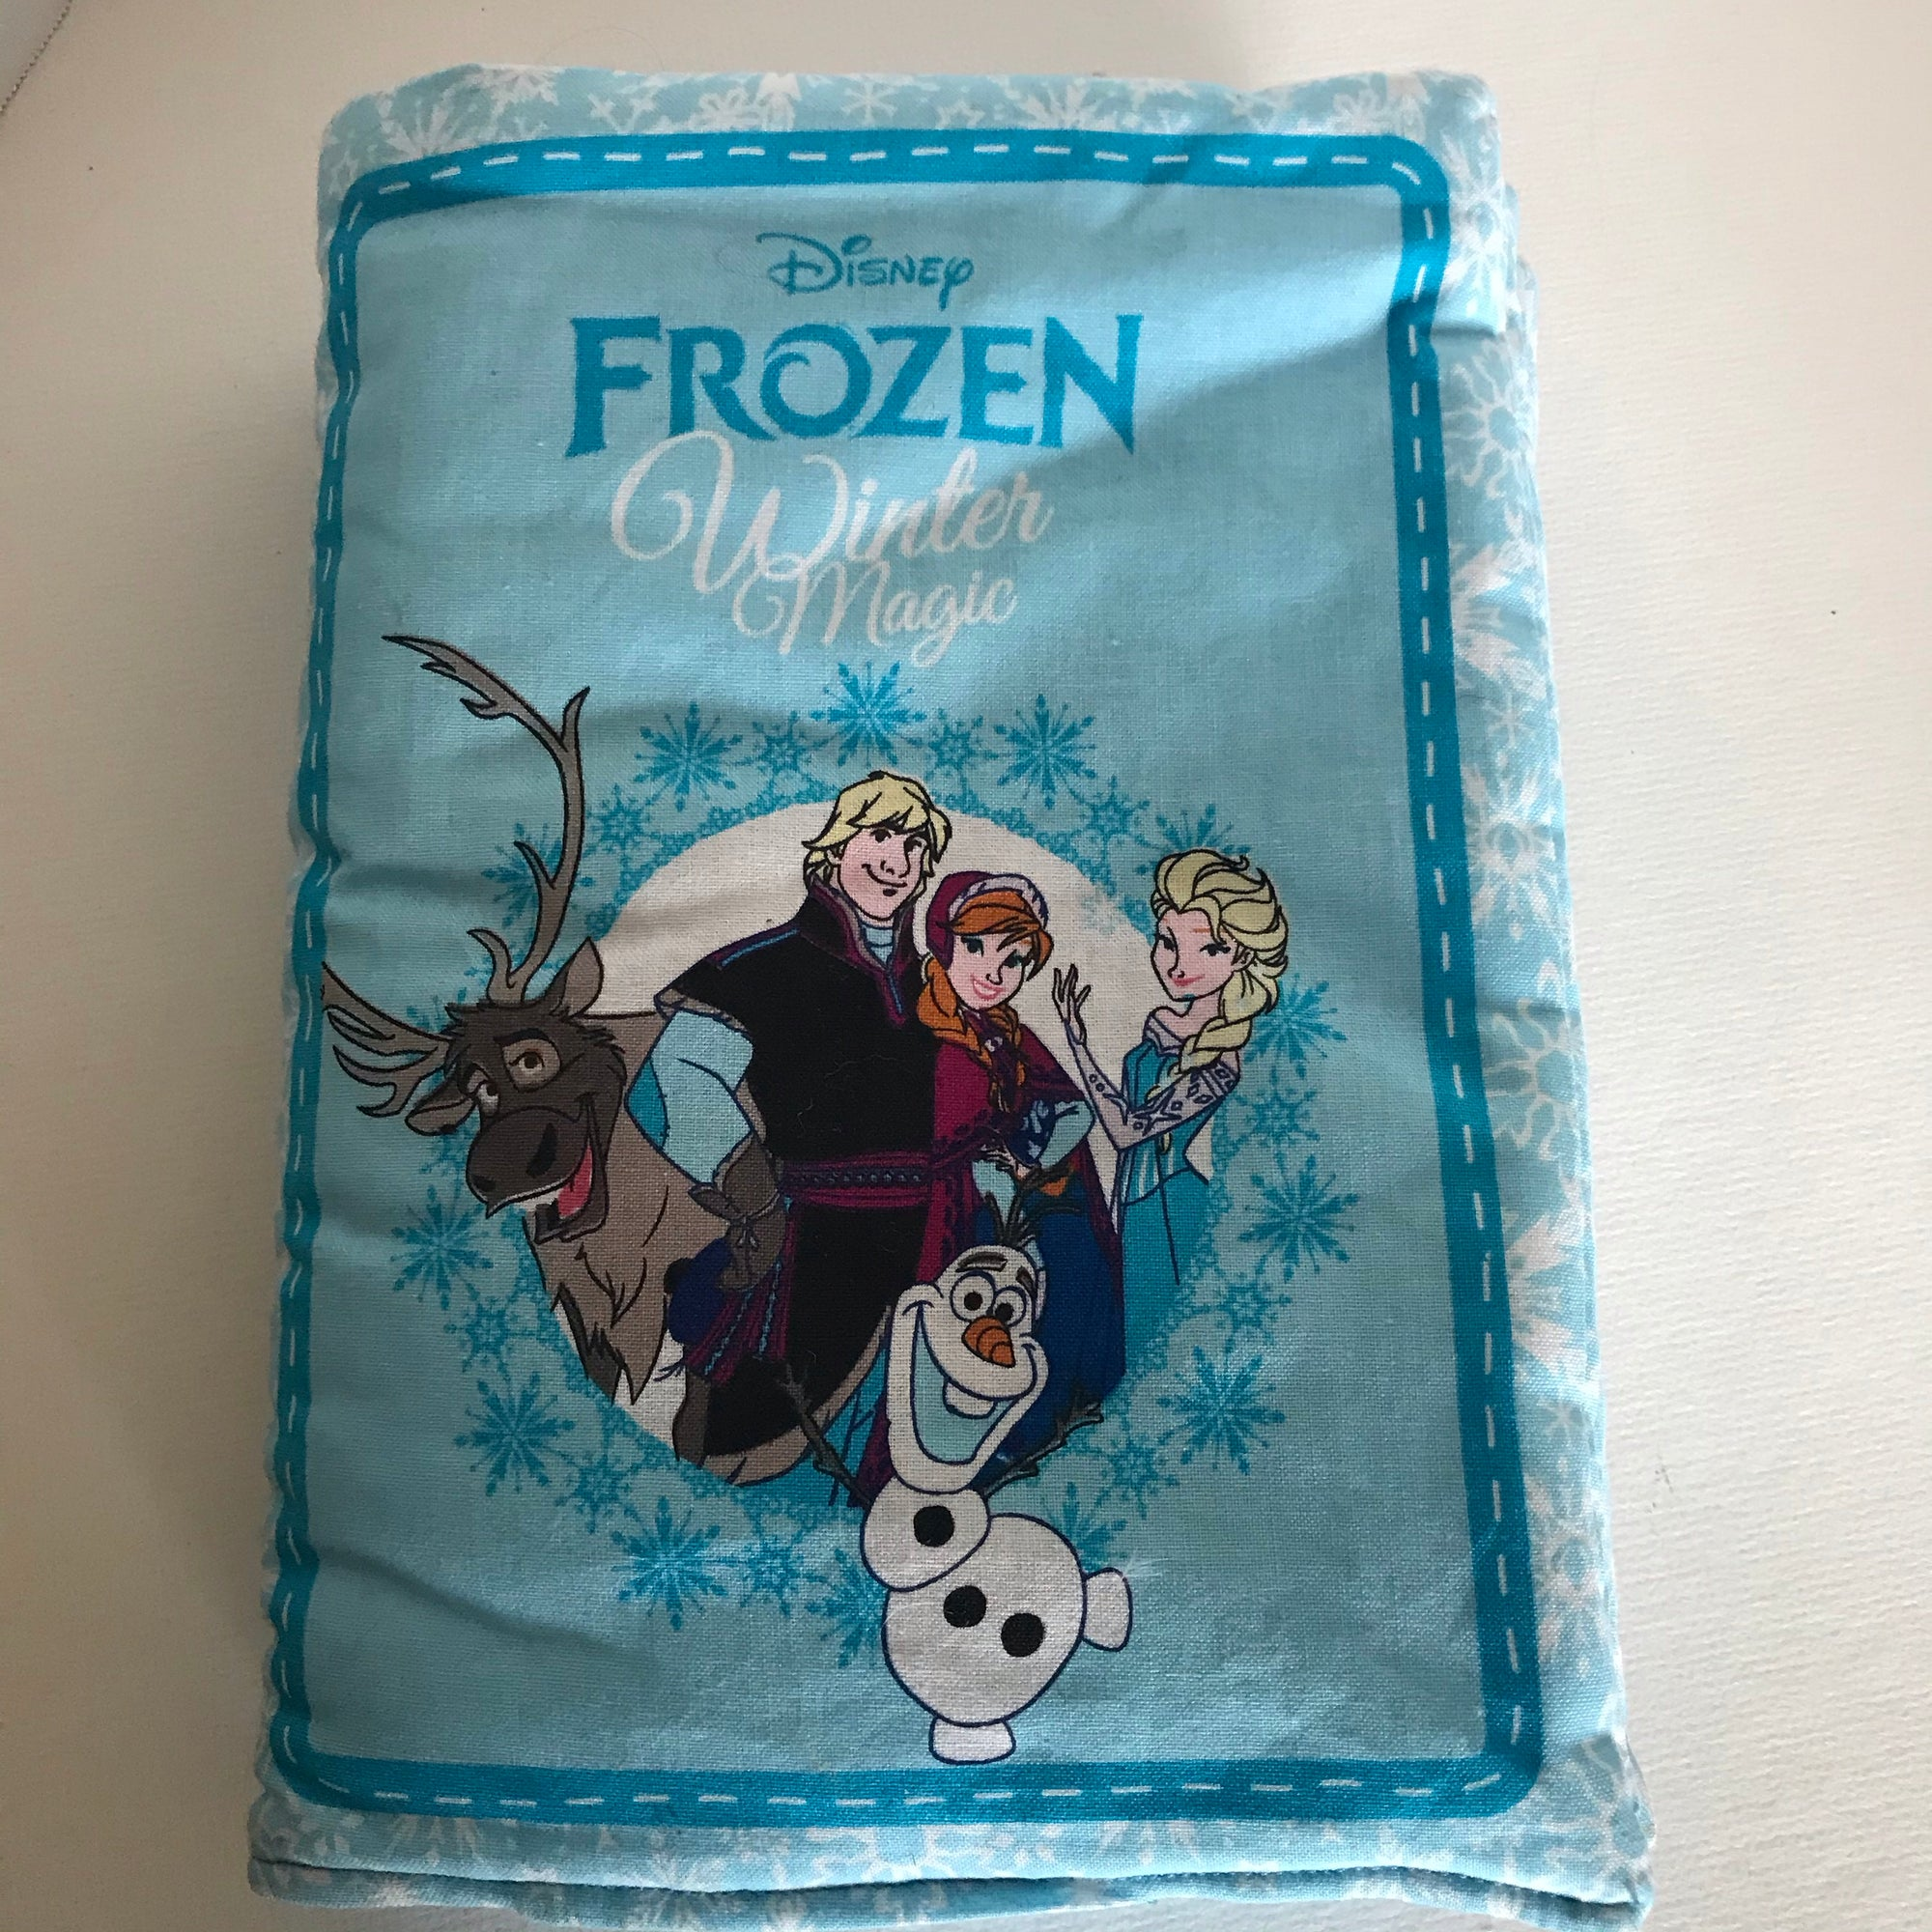 Disney Frozen Winter Magic Soft Cloth Book Children's Book-Chickenmash Farm